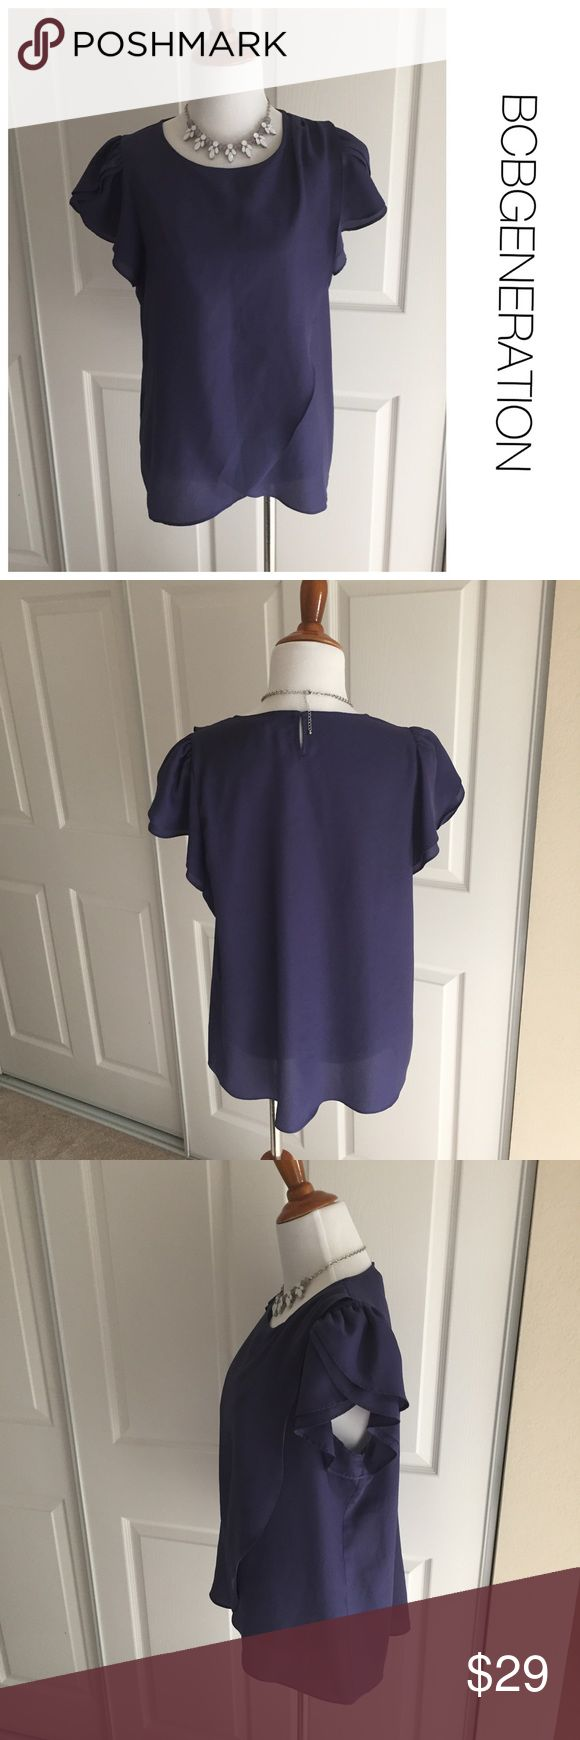 BCBGENERATION top with ruffle sleeve size M ♦️Excellent condition. No holes, stains or piling.                                                 ♦️Materials- 100% polyester    ♦️Measurements:                               ♦️Laying flat armpit to armpit: approximately 18 inches                       ♦️Laying flat from the back of the neck to the bottom of the front hem is approximately 27 inches BCBGeneration Tops Blouses